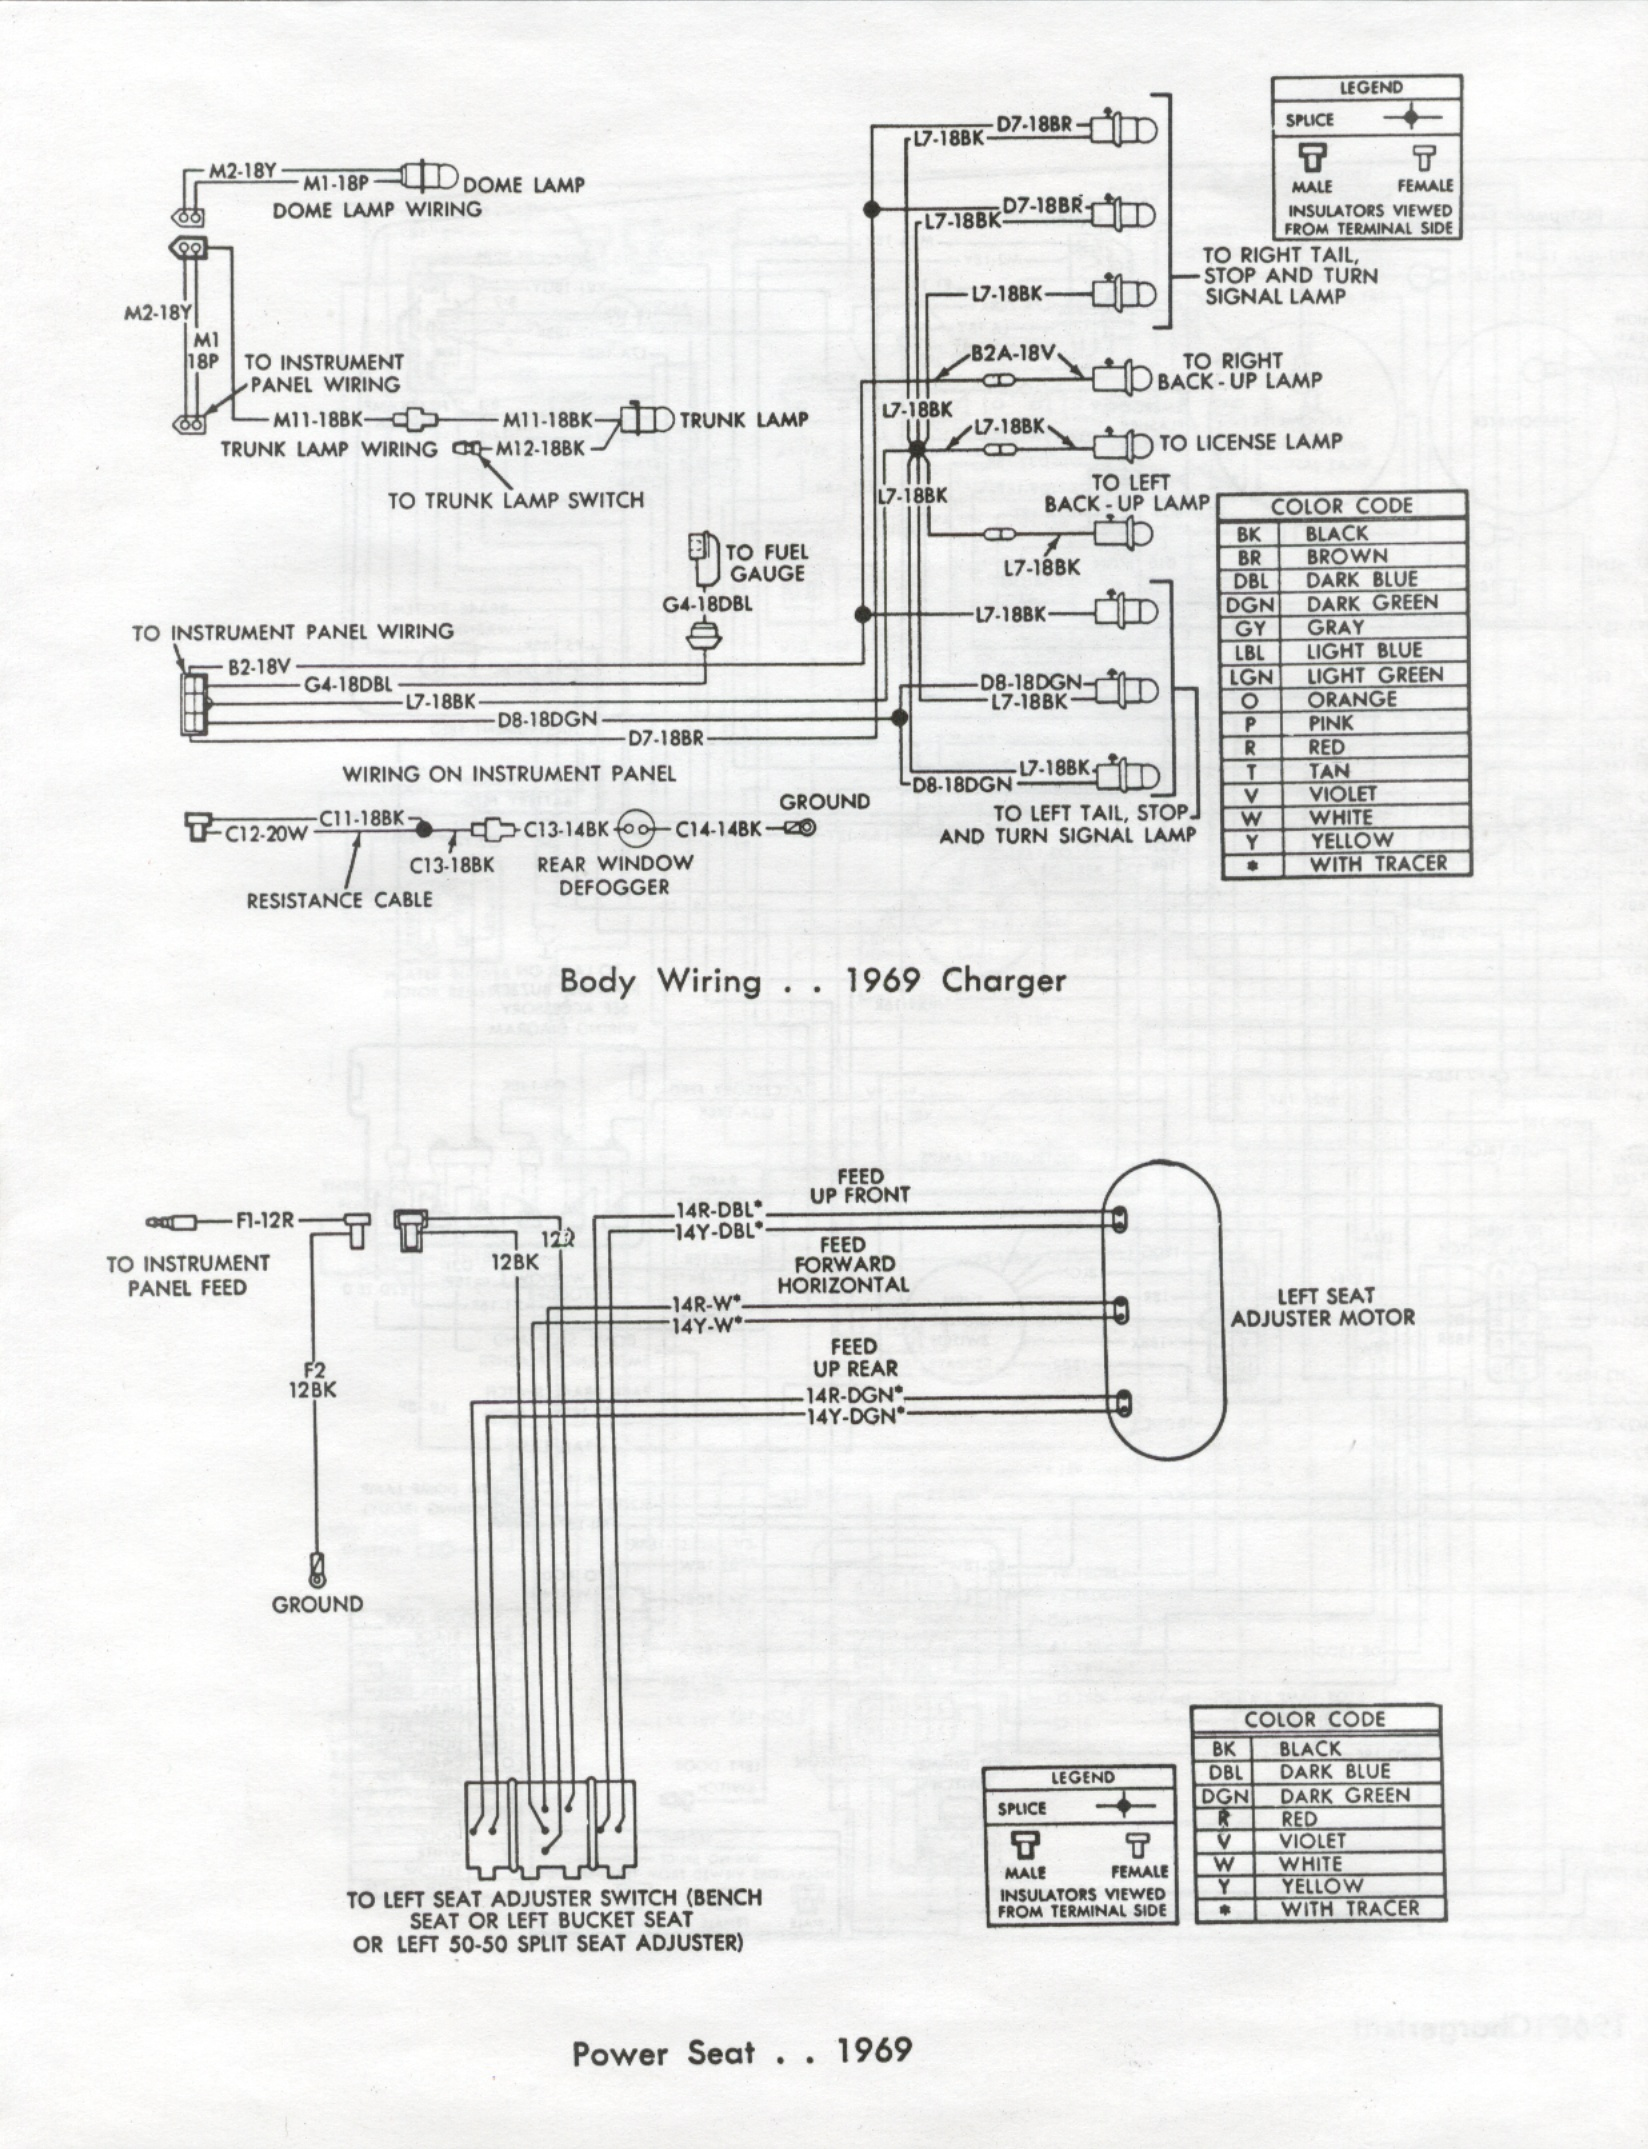 Dodge Charger Vacuum Diagram